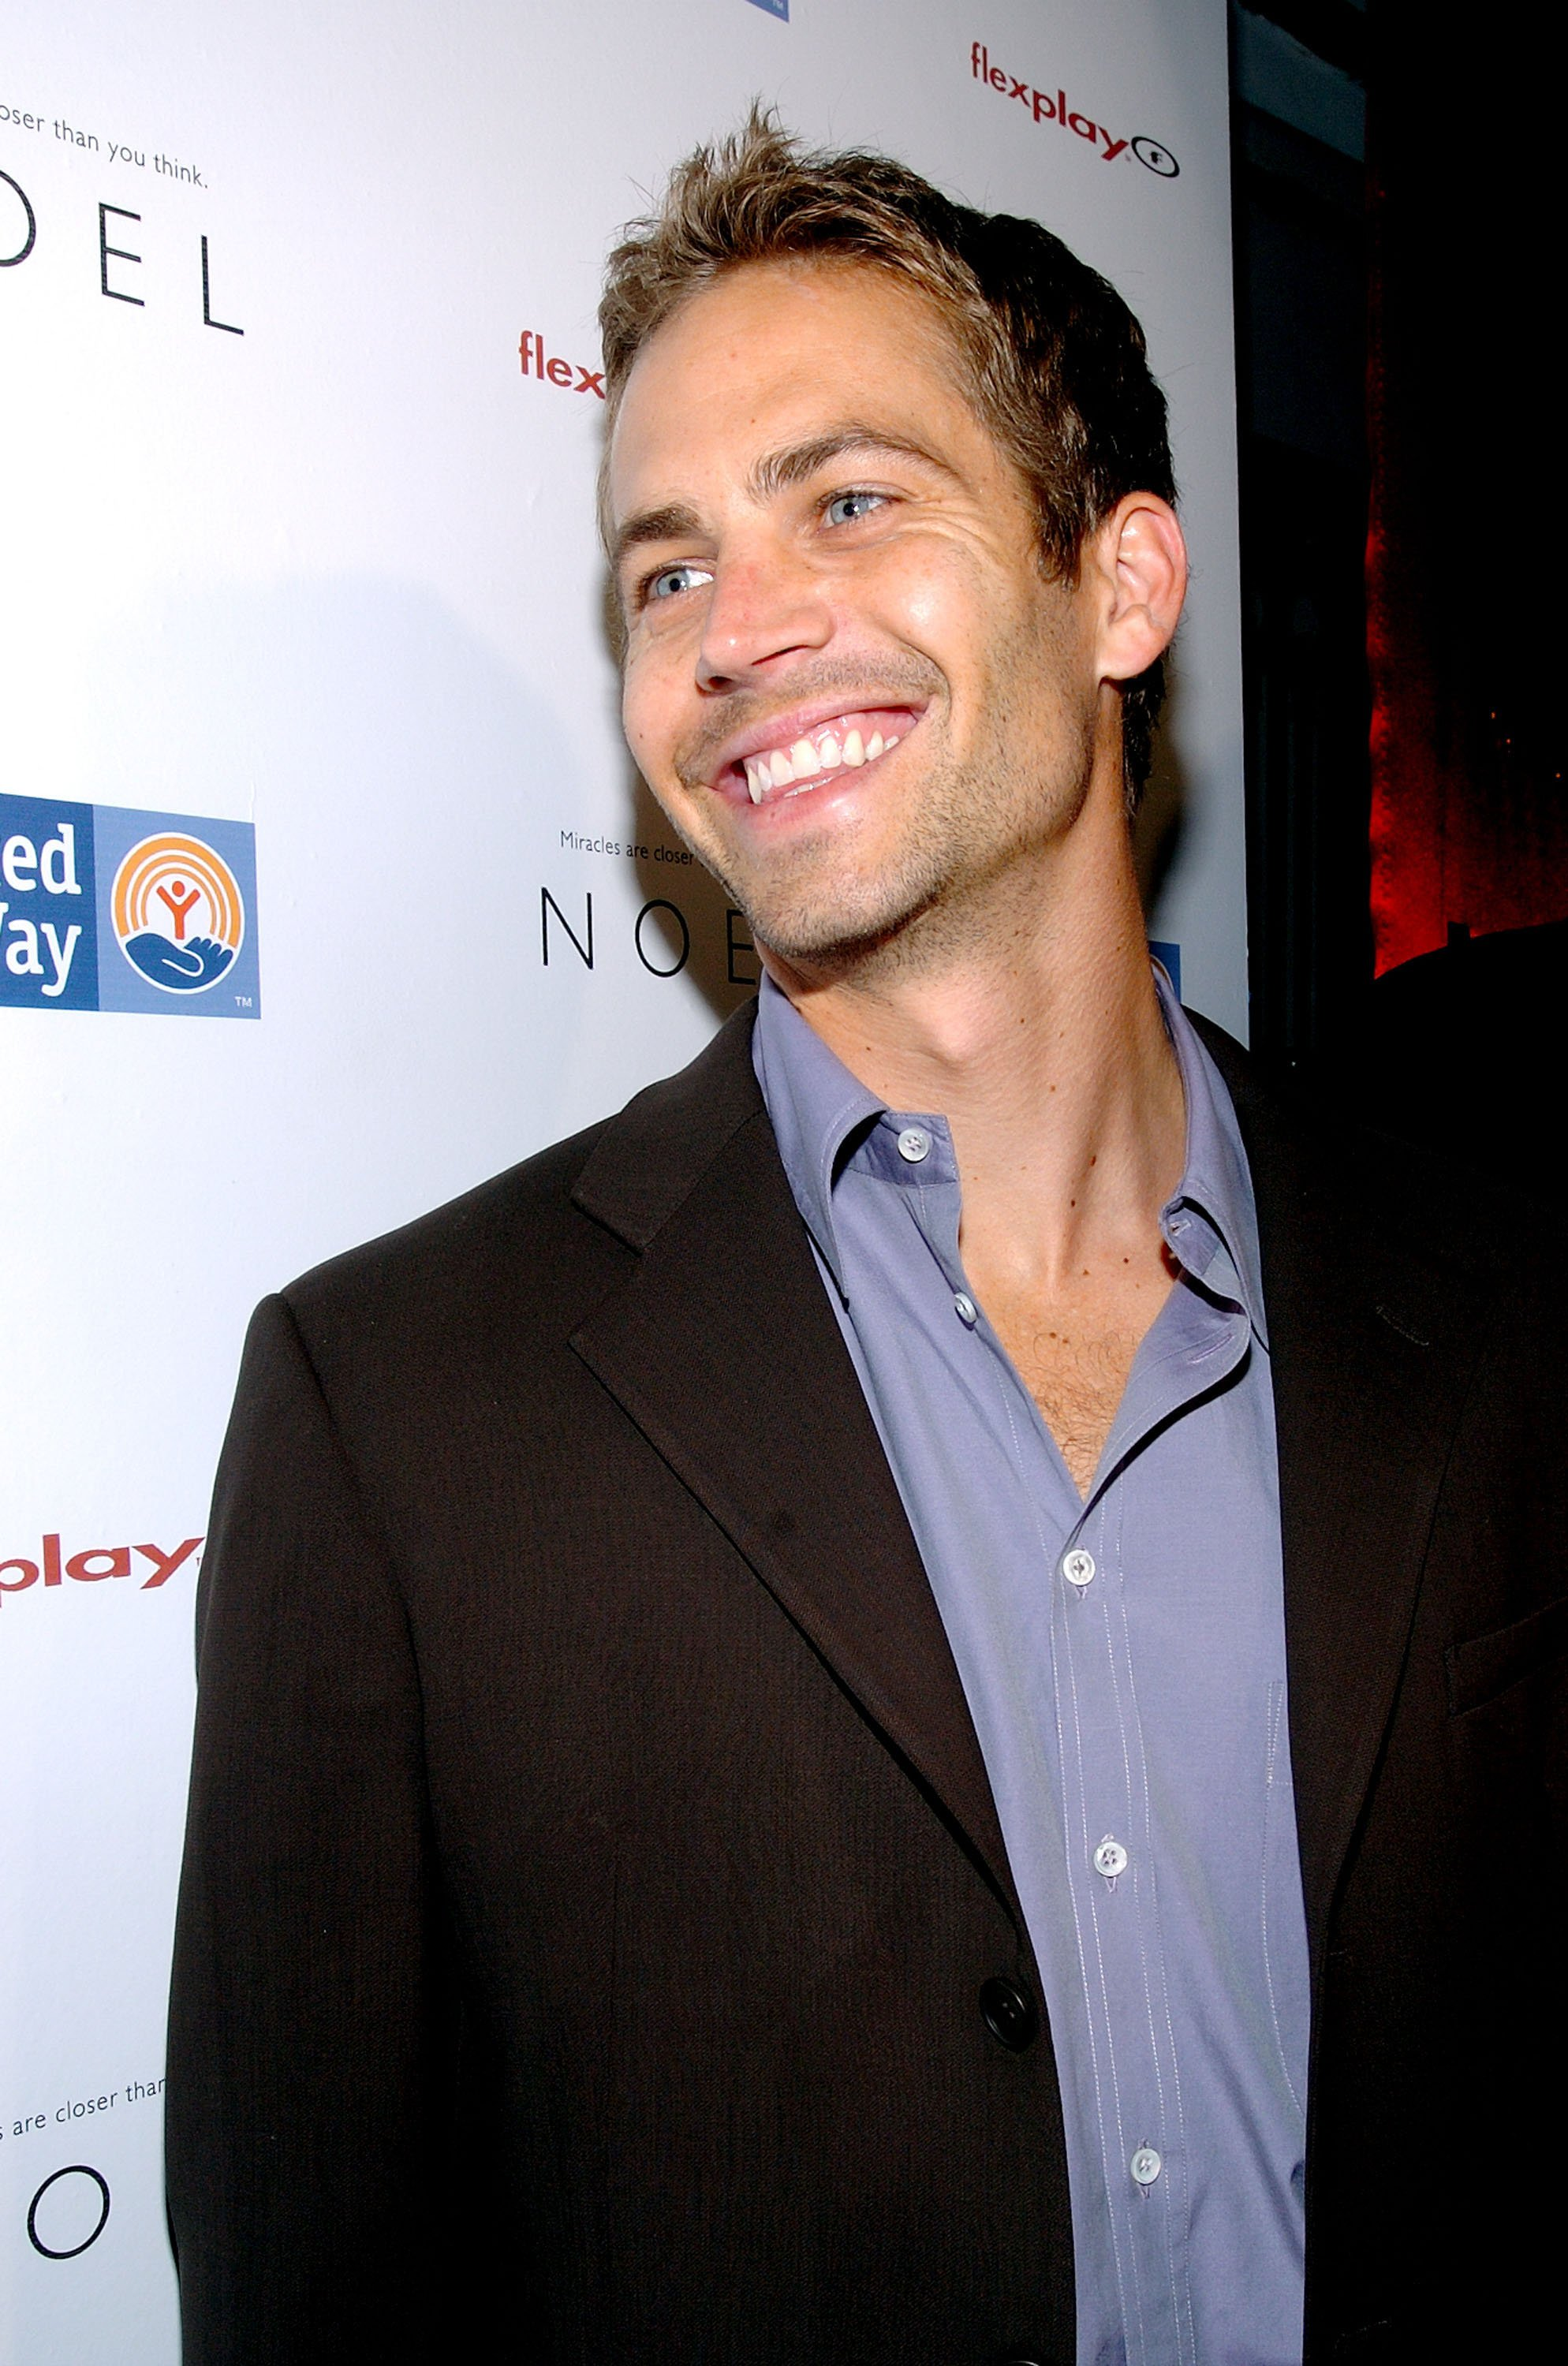 Paul Walker at an exclusive pre-release screening of the movie 'NOEL' at the Exclusuve Forge Restaurant on November 10, 2004 in Miami Beach, Florida   Photo: Getty Images